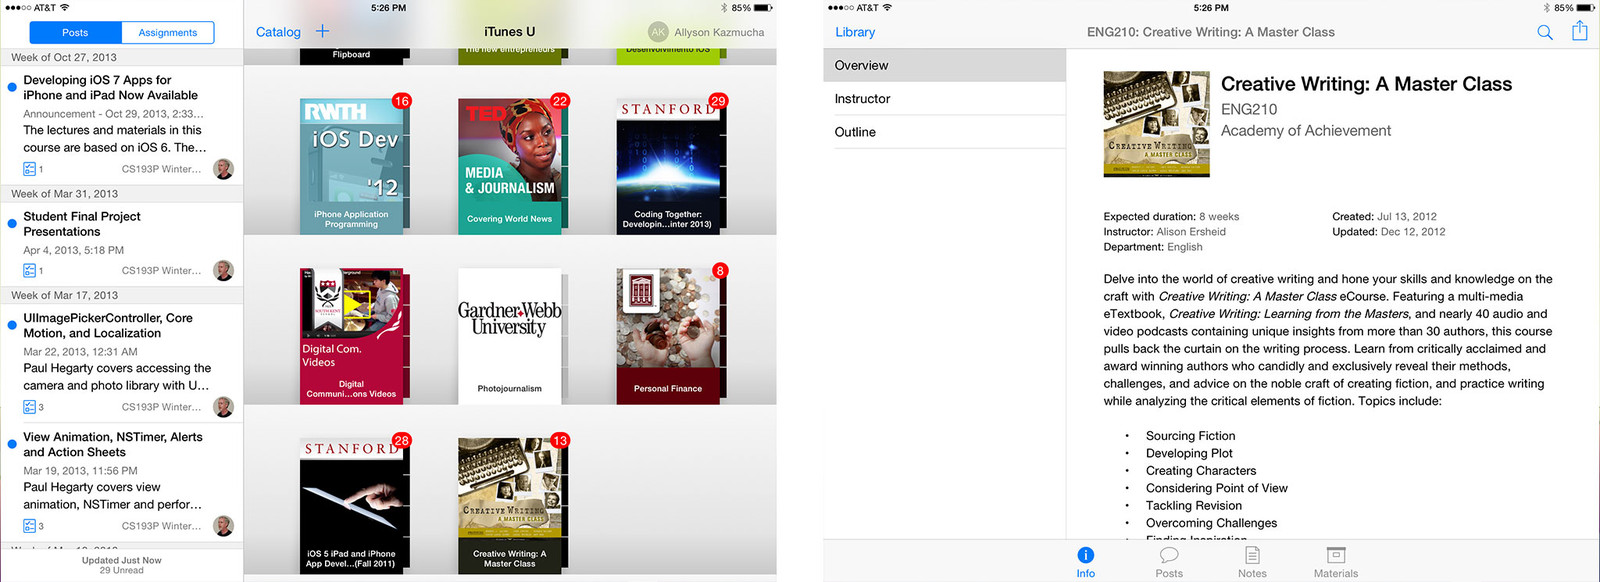 Best iPhone and iPad apps for college students: iTunes U